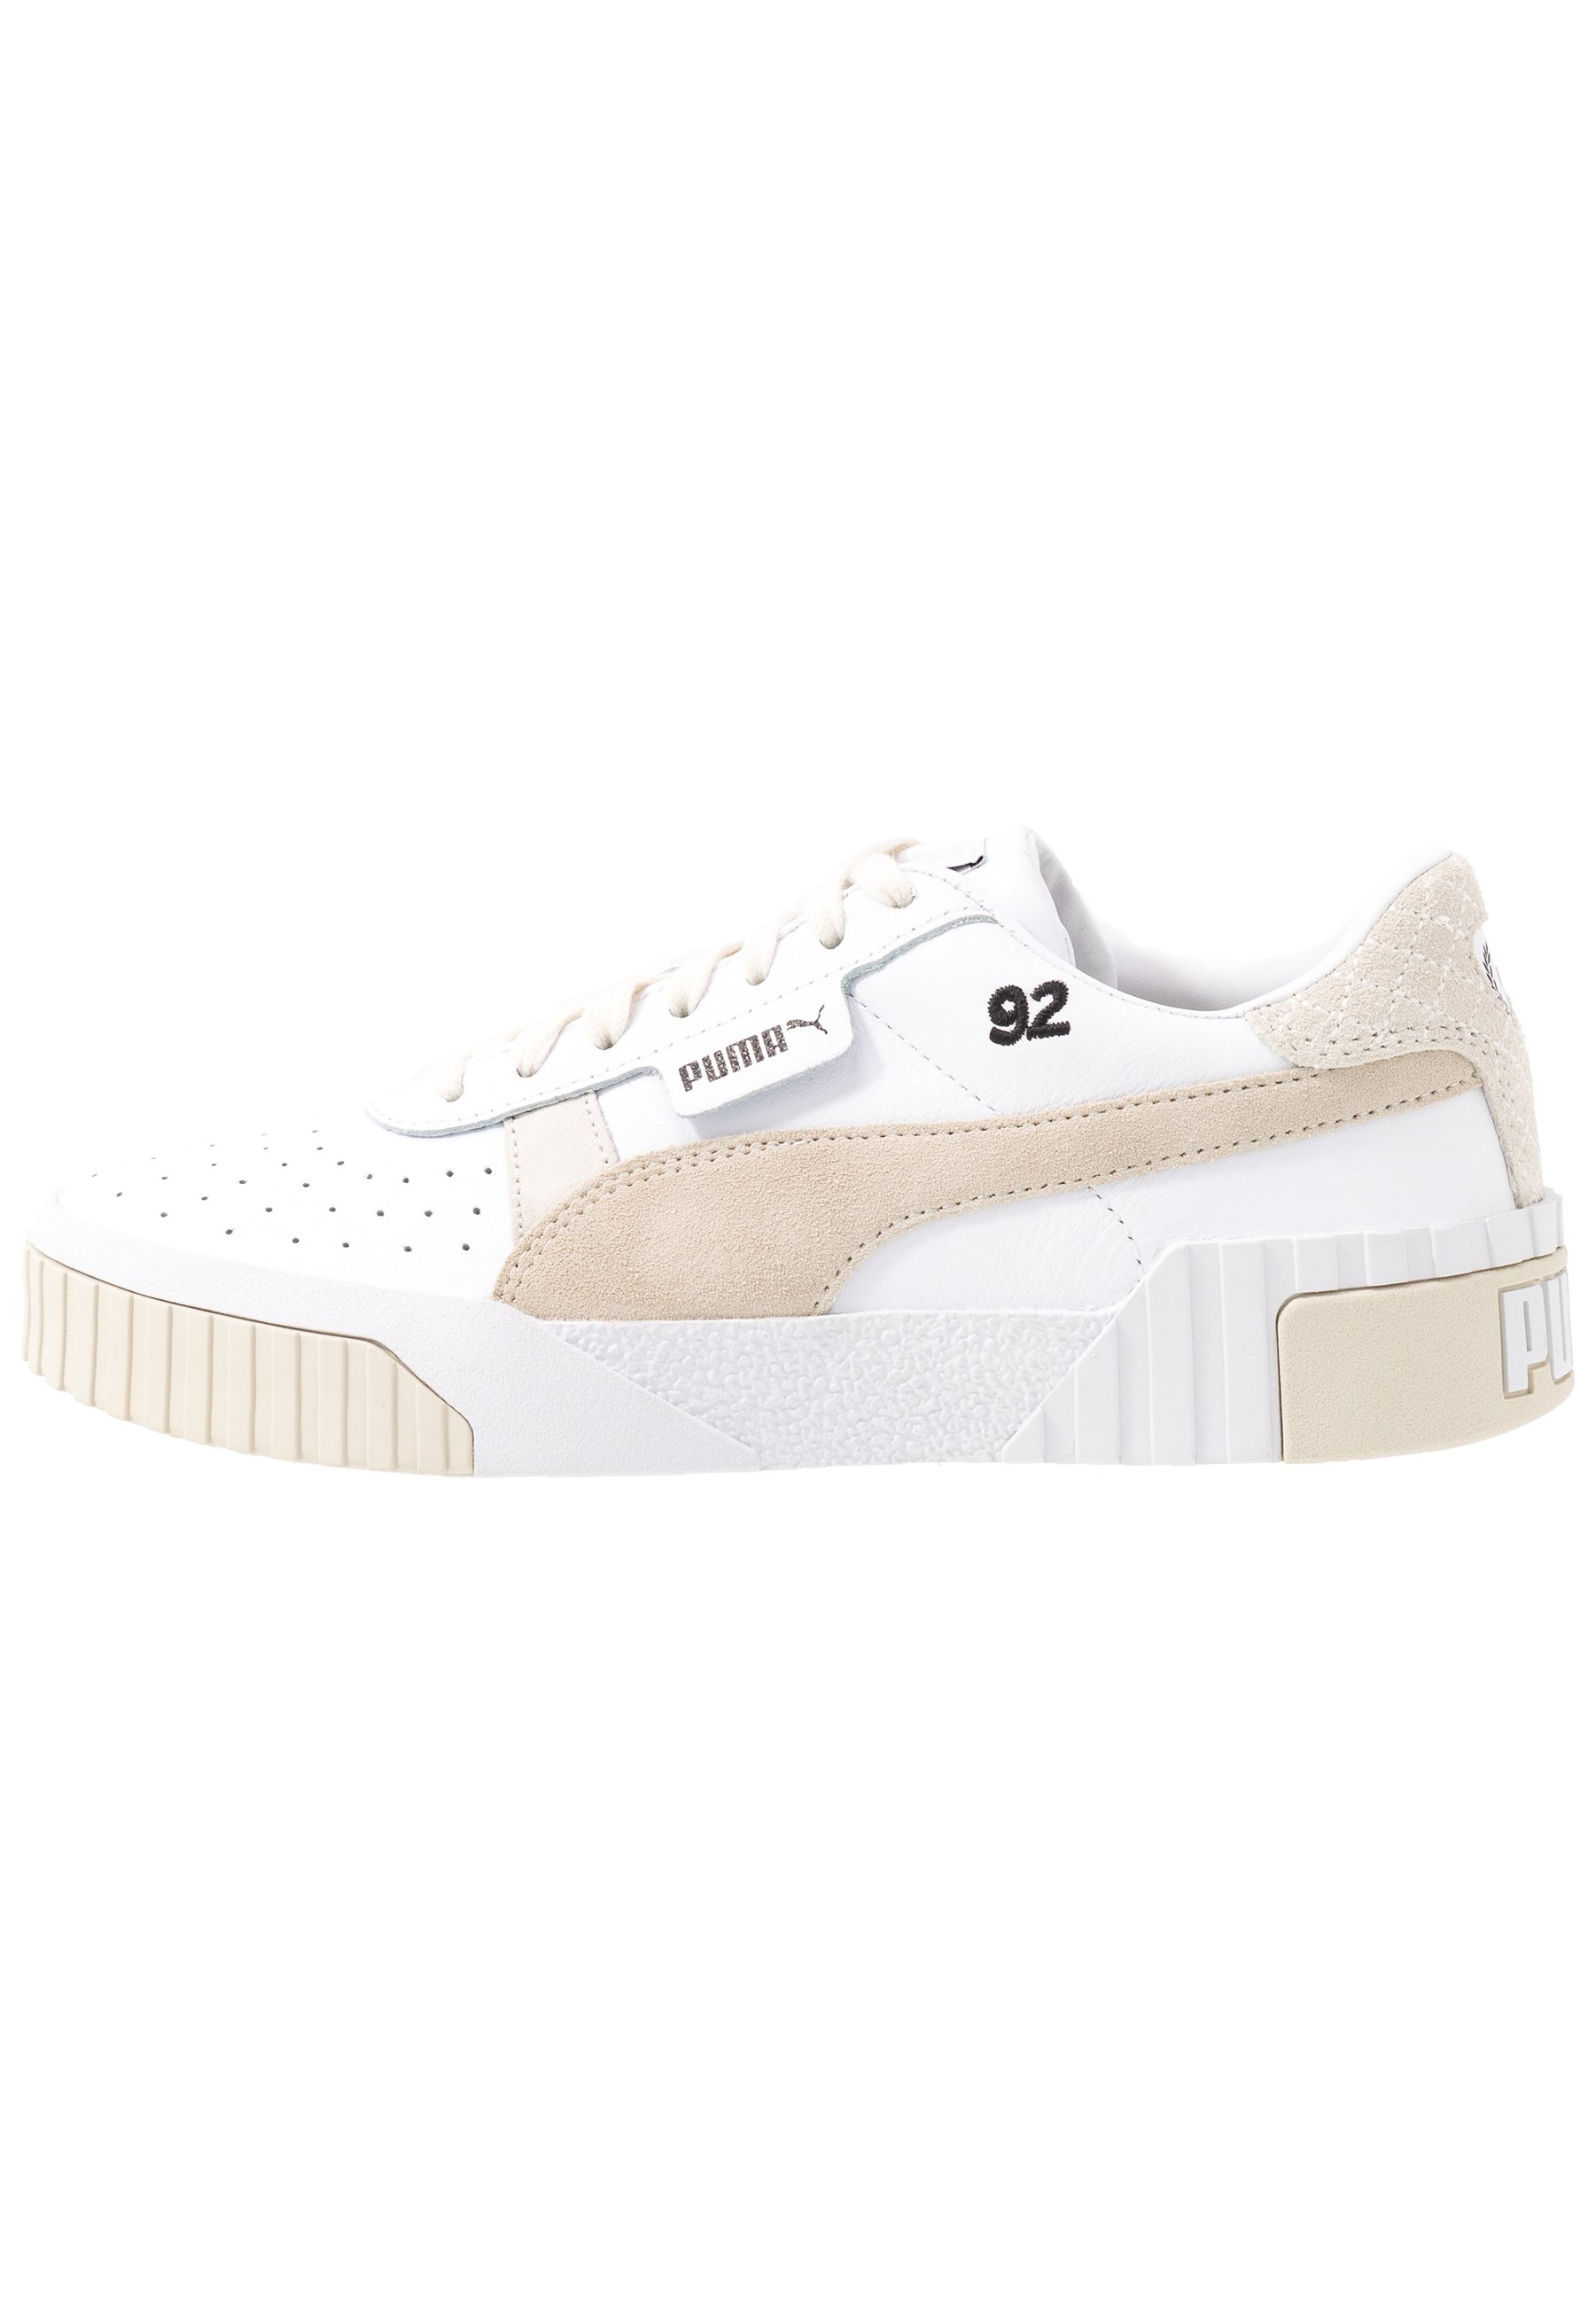 Puma Cali Selena Gomez - Sneaker Low White/silver Gray Black Friday